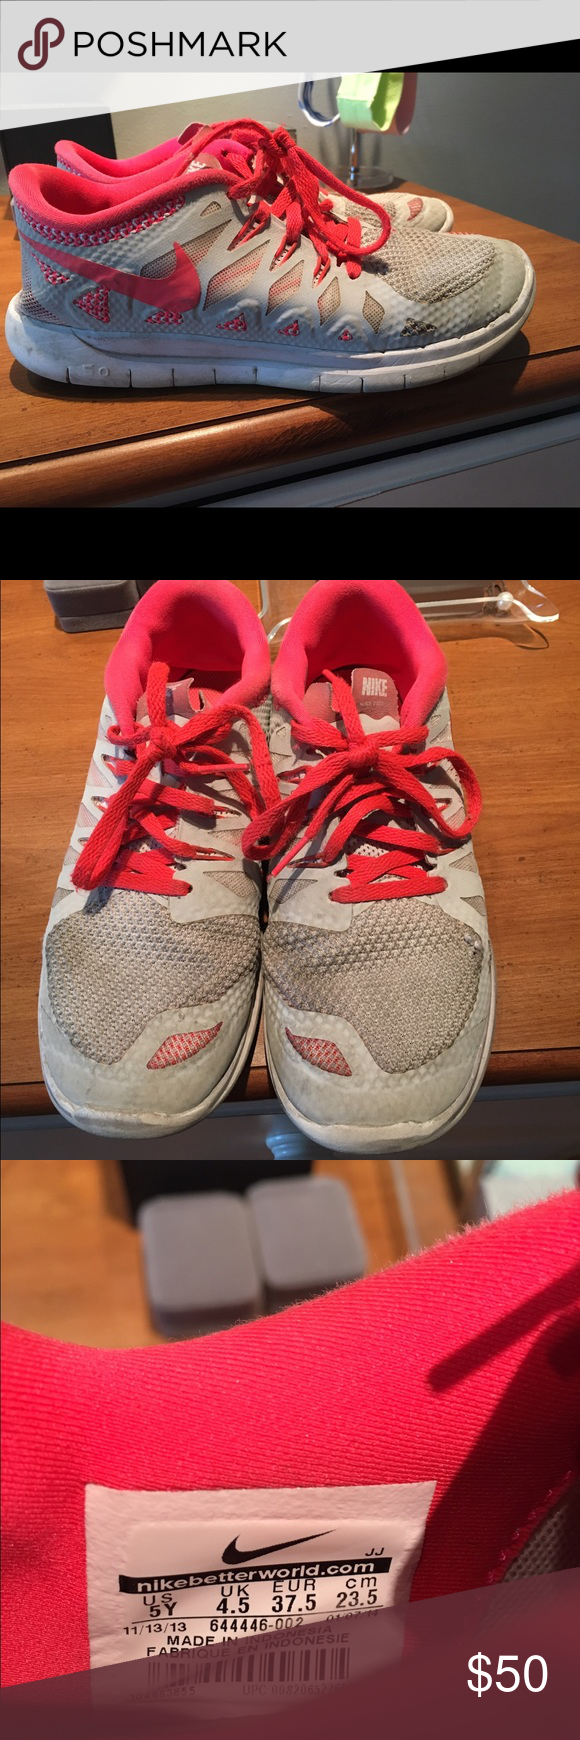 ... order  004f0 8c525 Nike tennis shoes. Gently used. Perfect condition.  Comfortable tennis shoes. 283e0feec